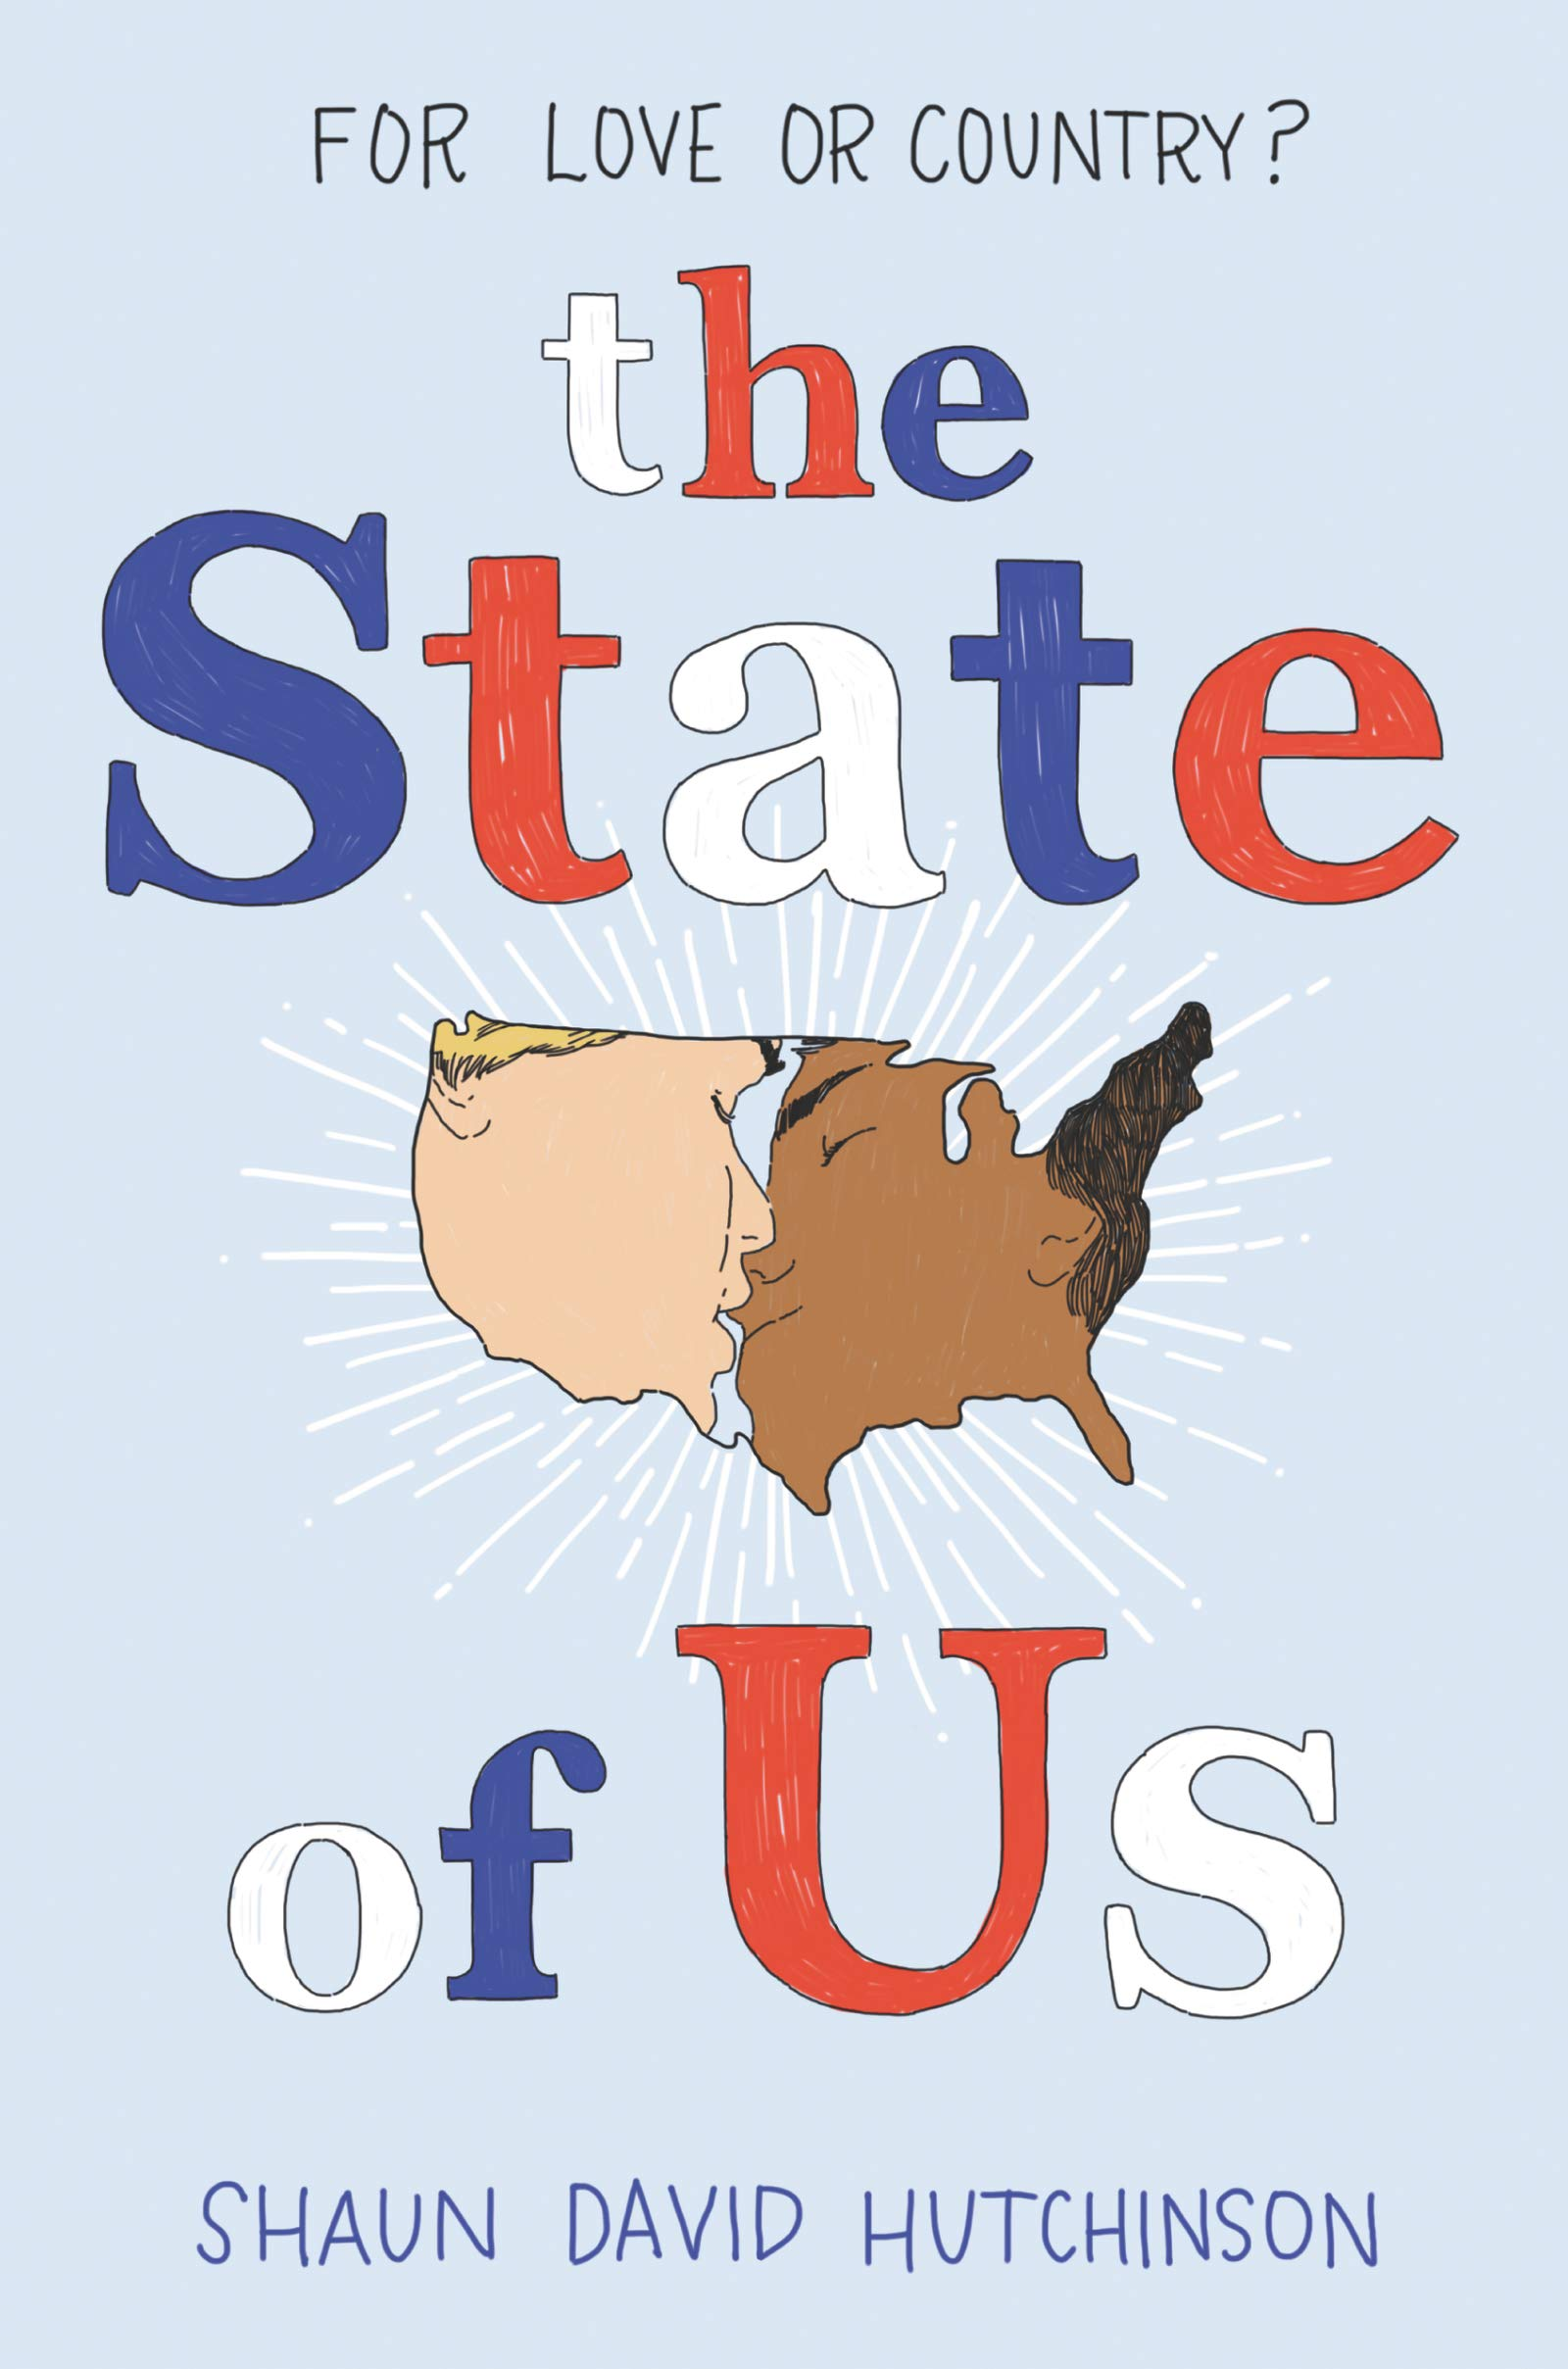 Amazon.com: The State of Us (9780062950314): Hutchinson, Shaun David: Books